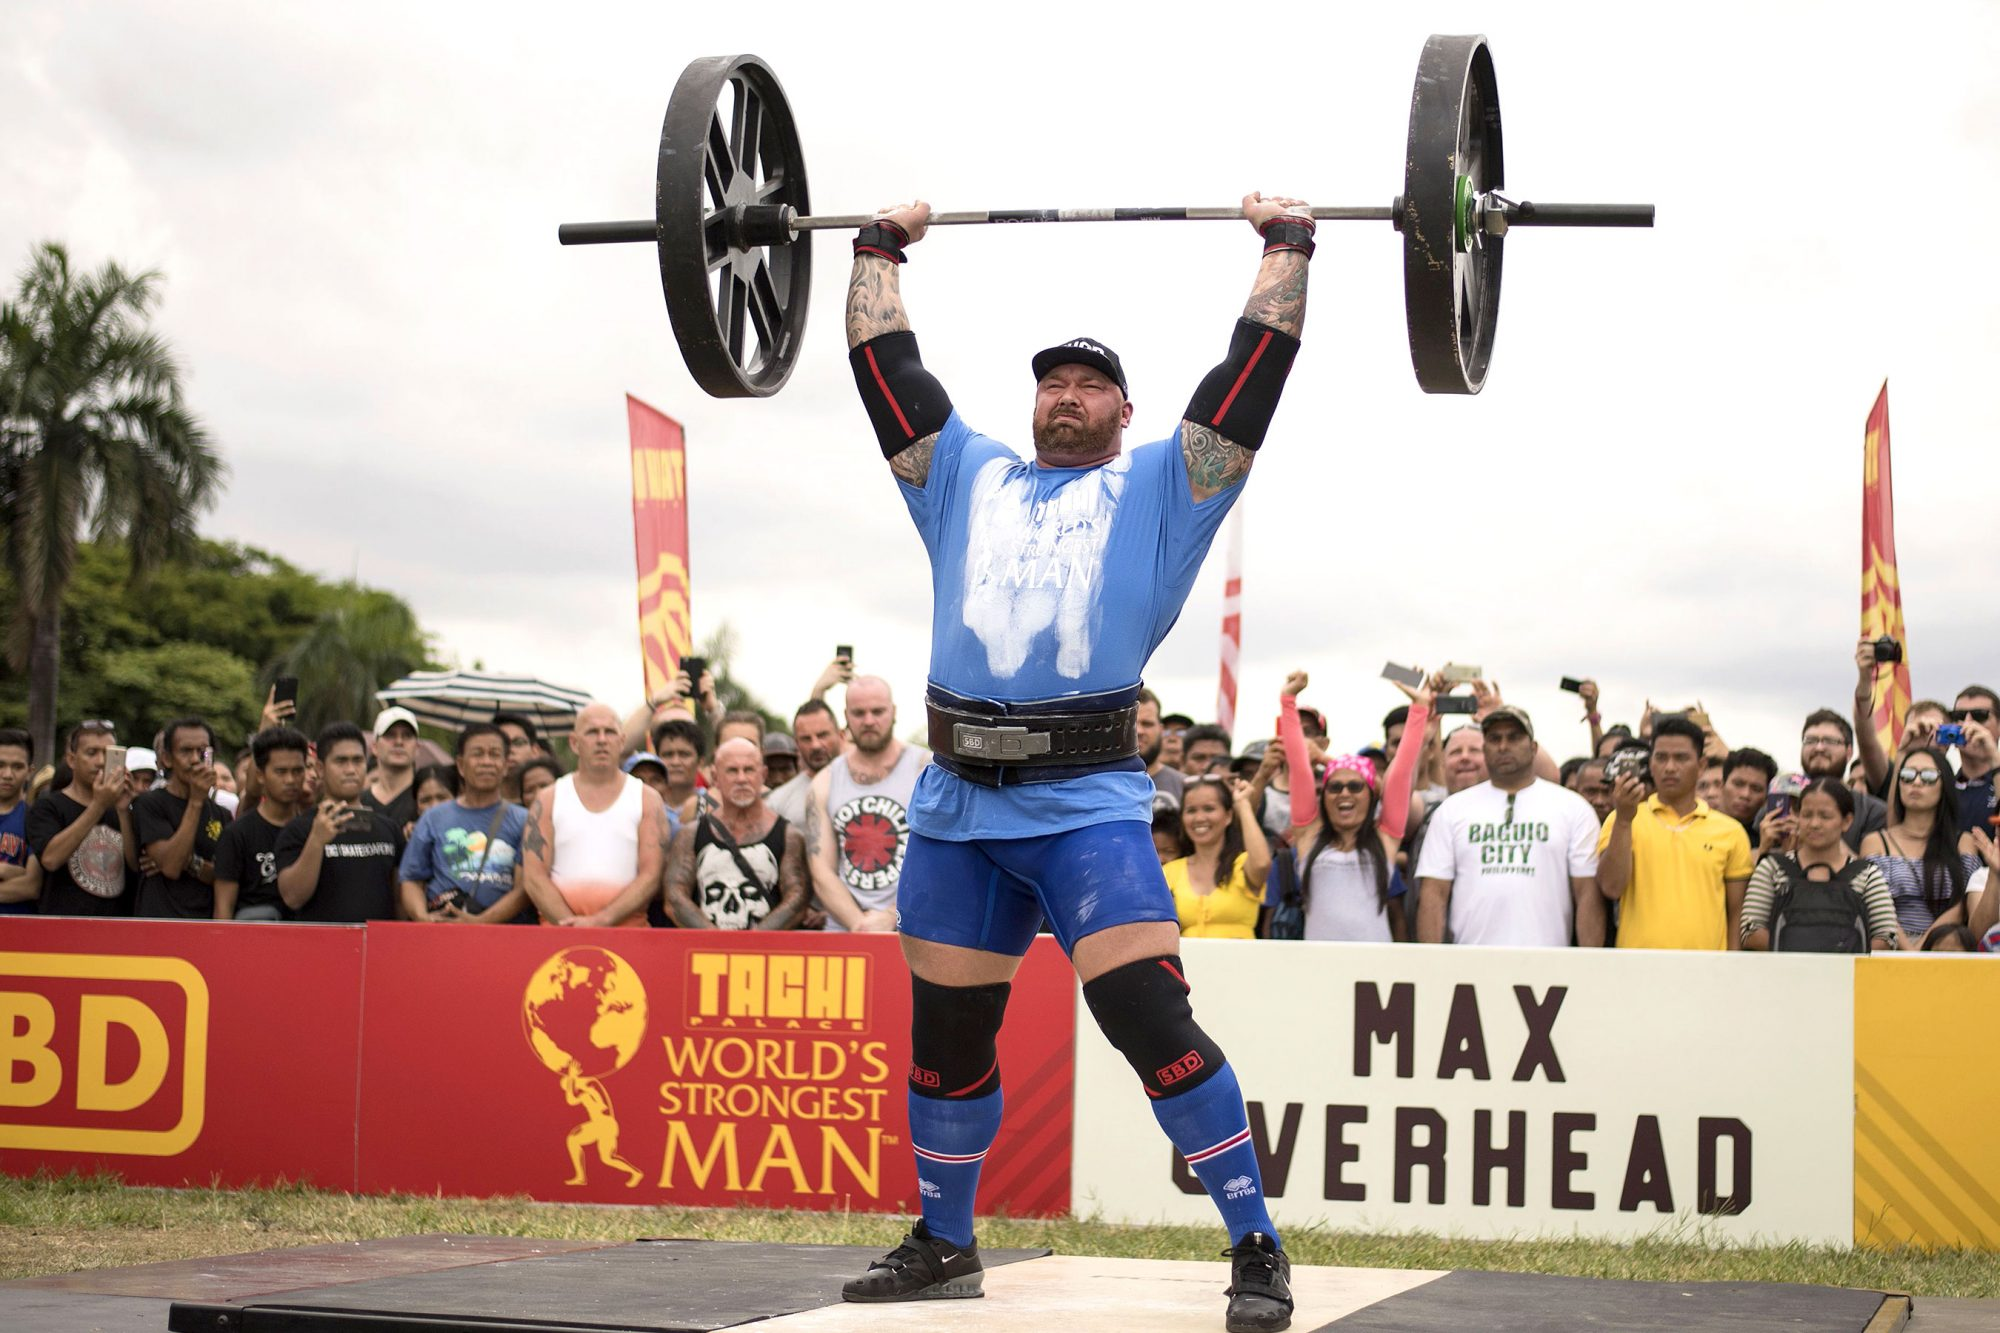 PHILIPPINES-ENTERTAINMENT-STRONGEST MAN